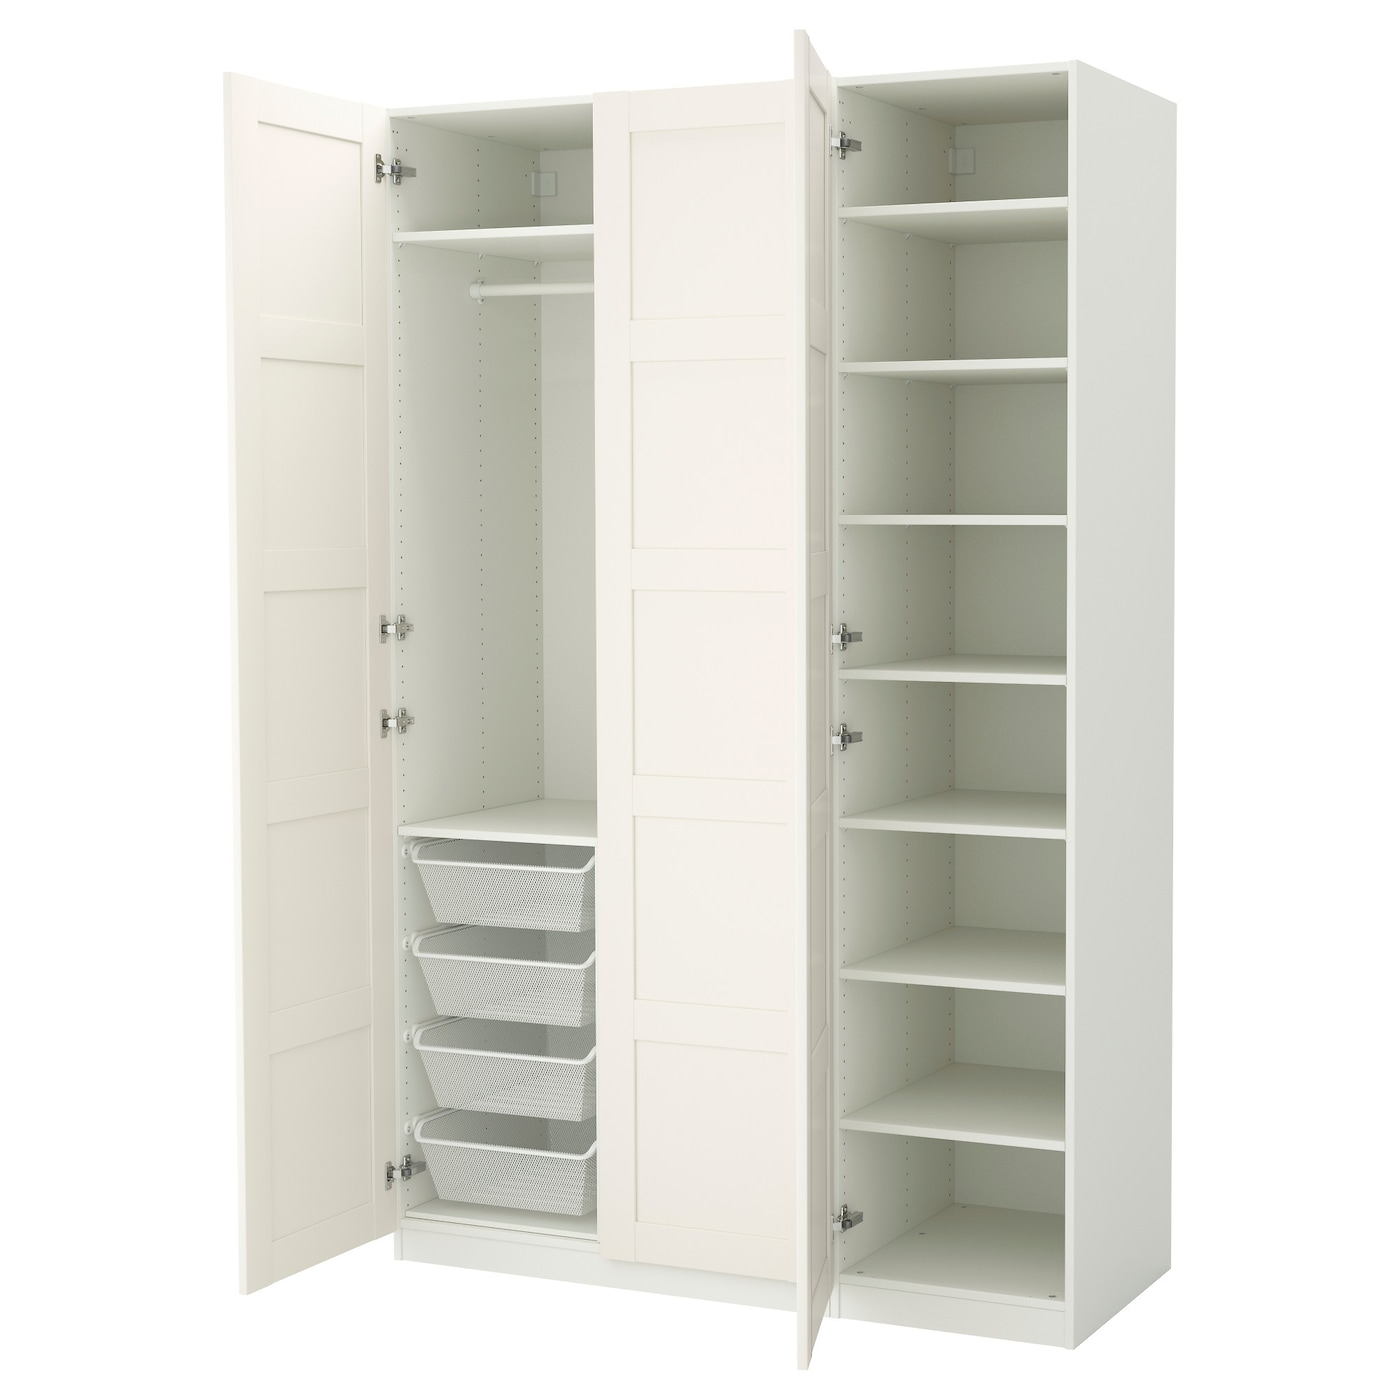 pax wardrobe white bergsbo white 150 x 60 x 236 cm ikea. Black Bedroom Furniture Sets. Home Design Ideas